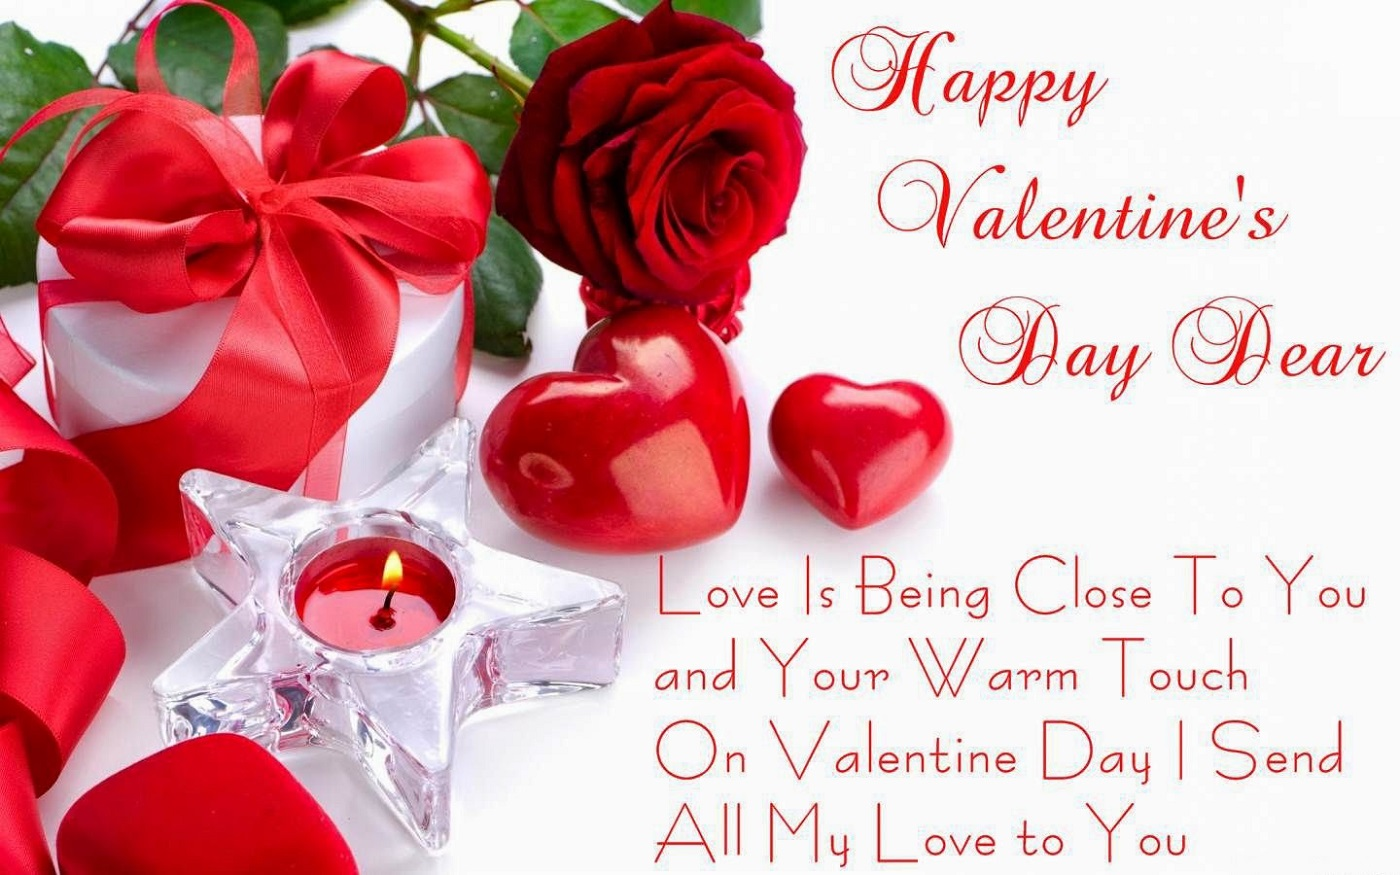 Valentines Quotes For Her Happy** Valentines Day Quotes For Herhim  Quotes Wishes Images